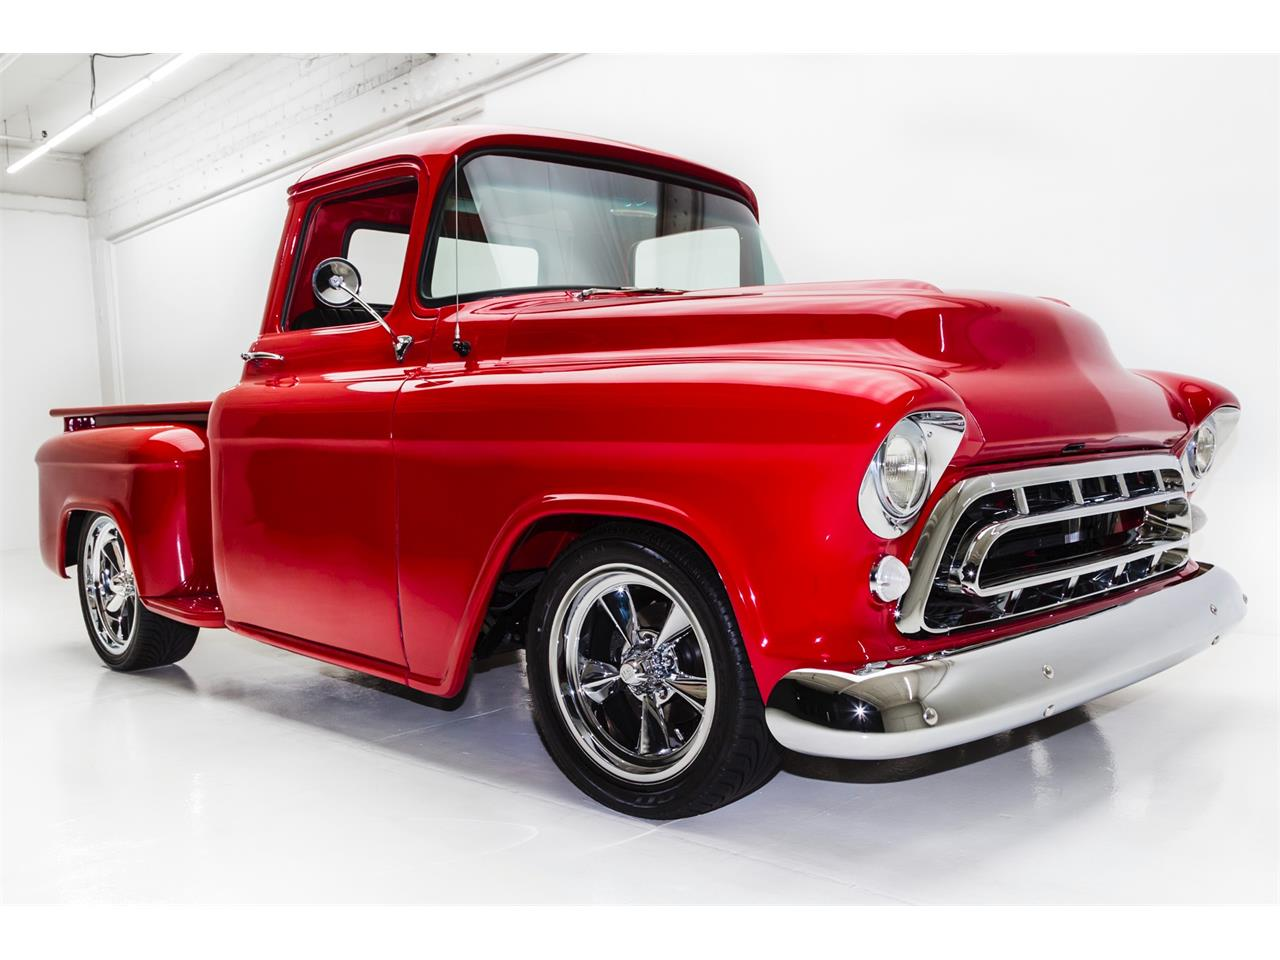 Large Picture of Classic '57 Chevrolet Pickup - $59,900.00 - KM69